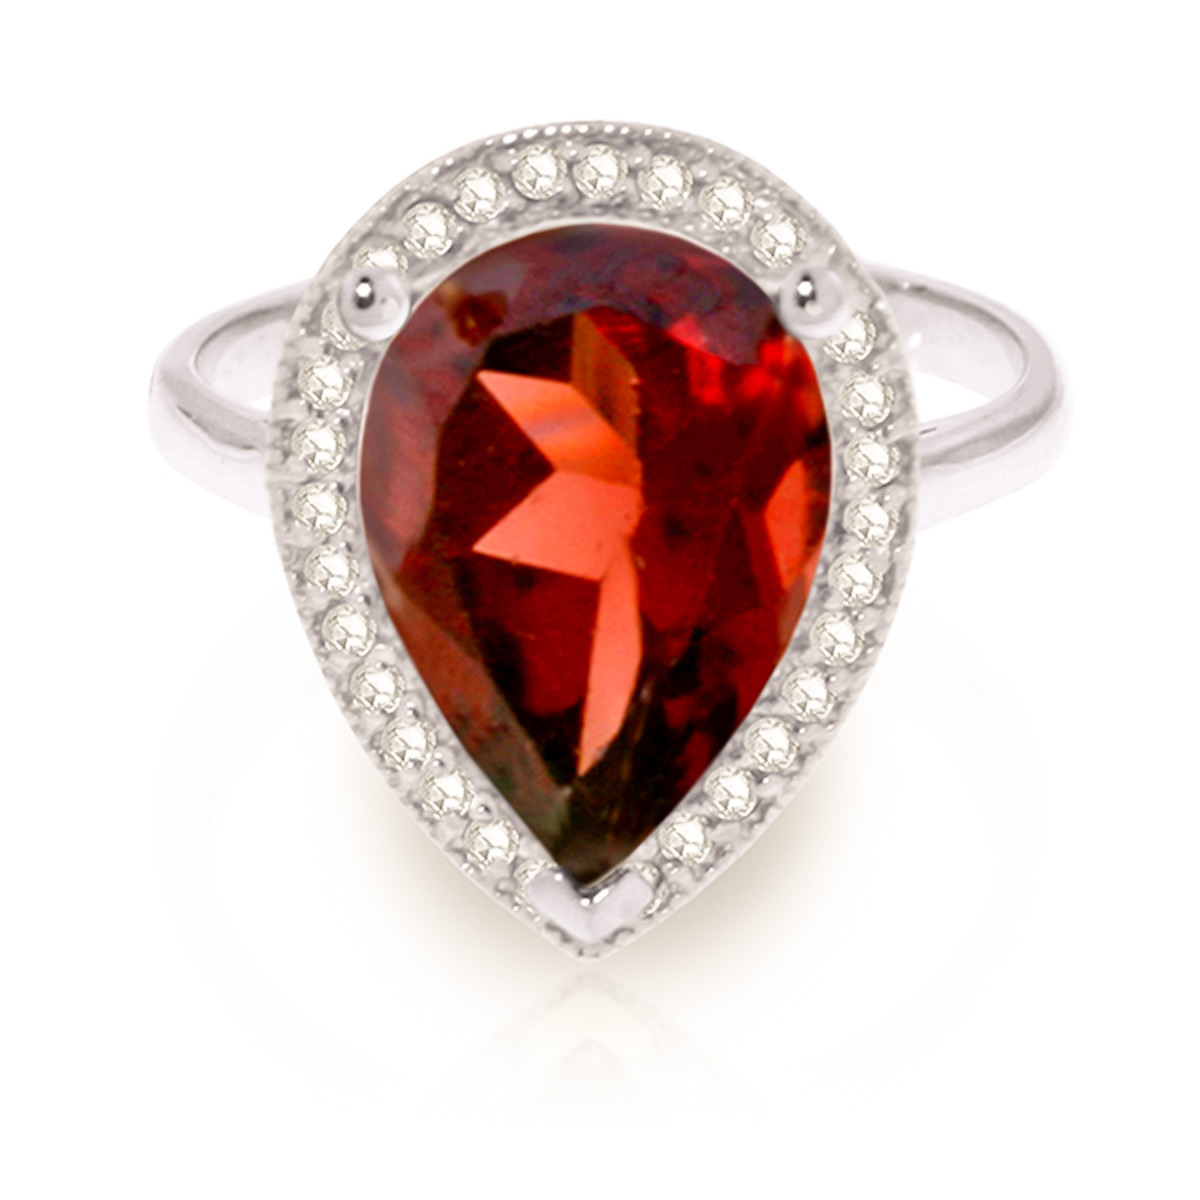 Garnet and Diamond Halo Ring 3.9ct in 9ct White Gold